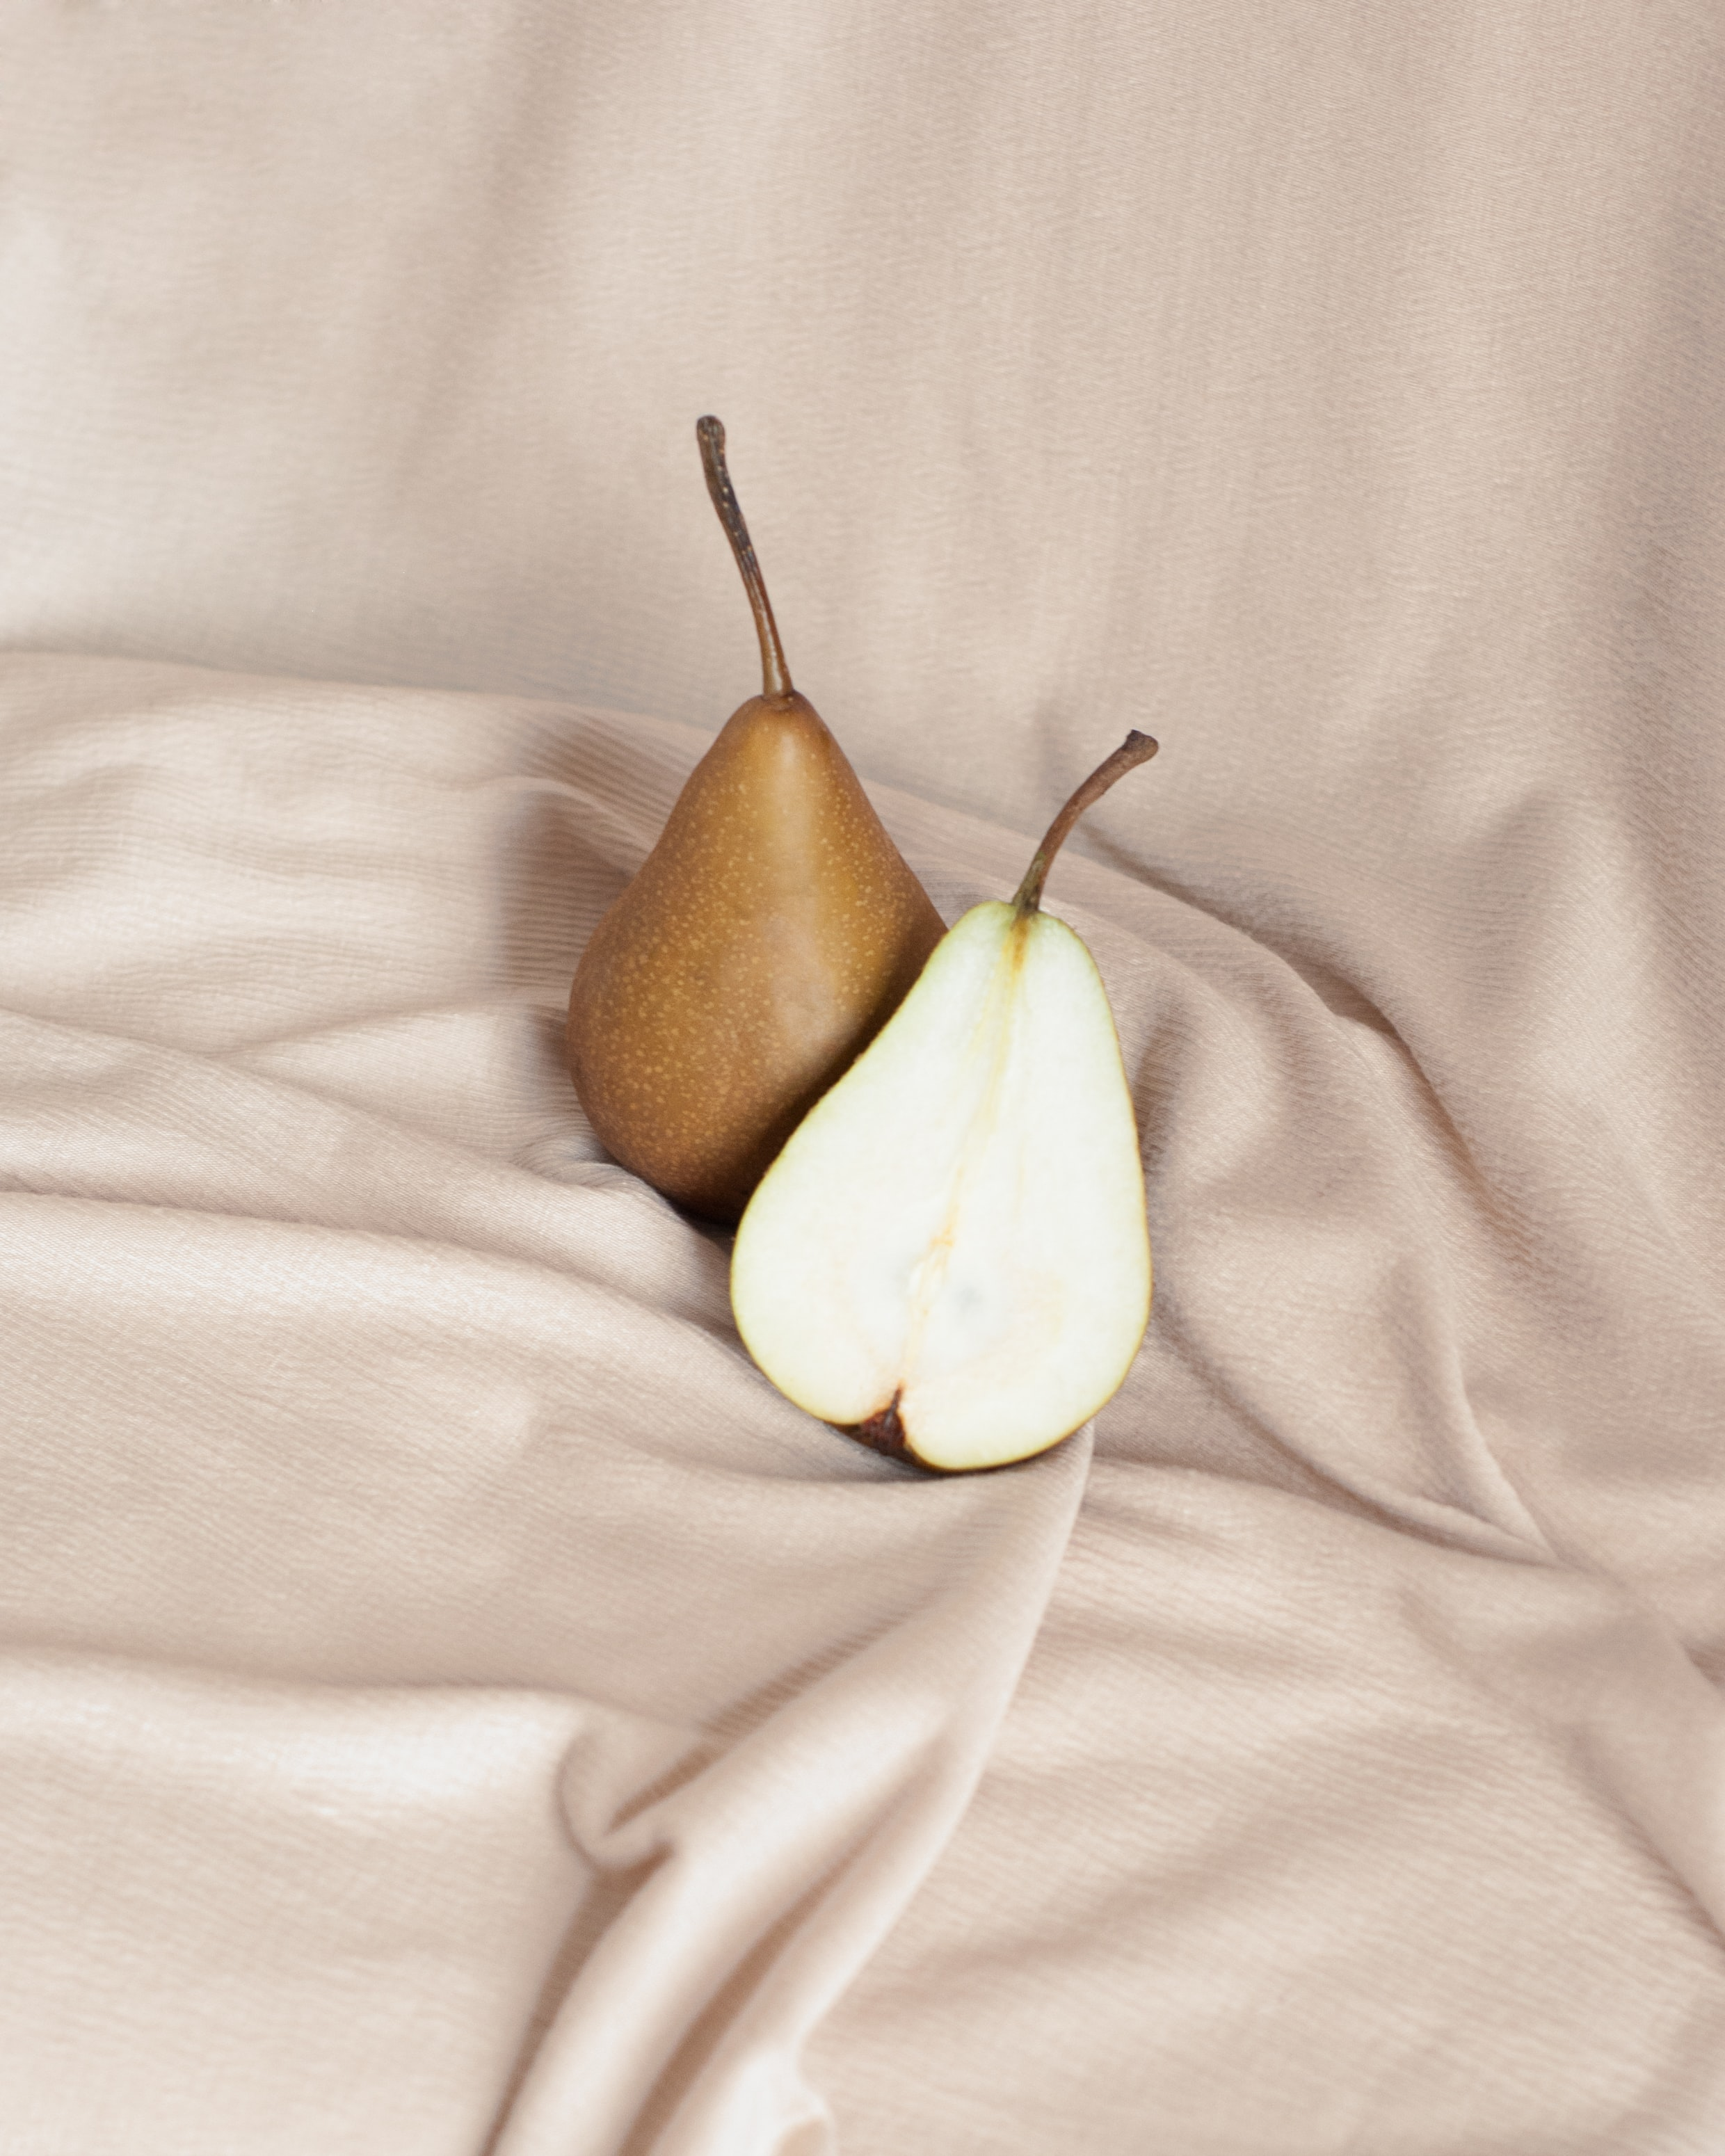 Two pears against a beige background